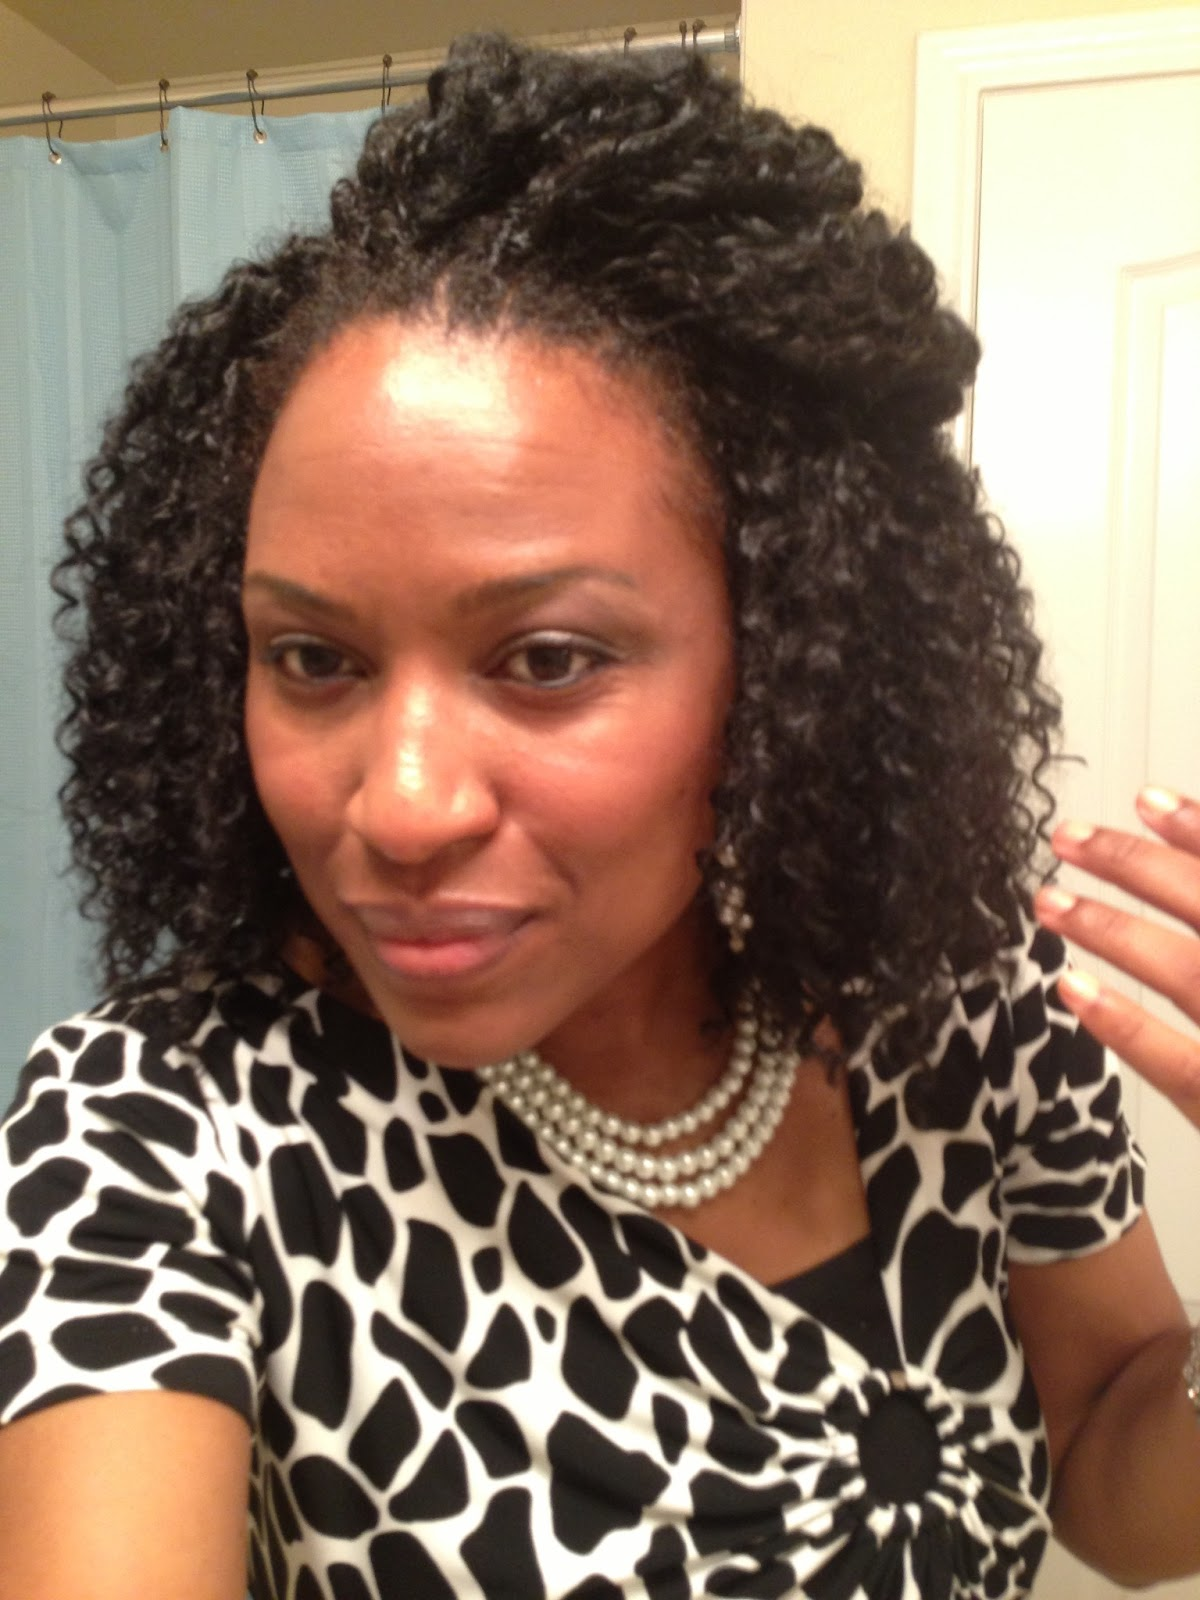 Crochet Hair Memphis : HAIR Get Maximum Wear out of your Crochet Braids My 8 week Update